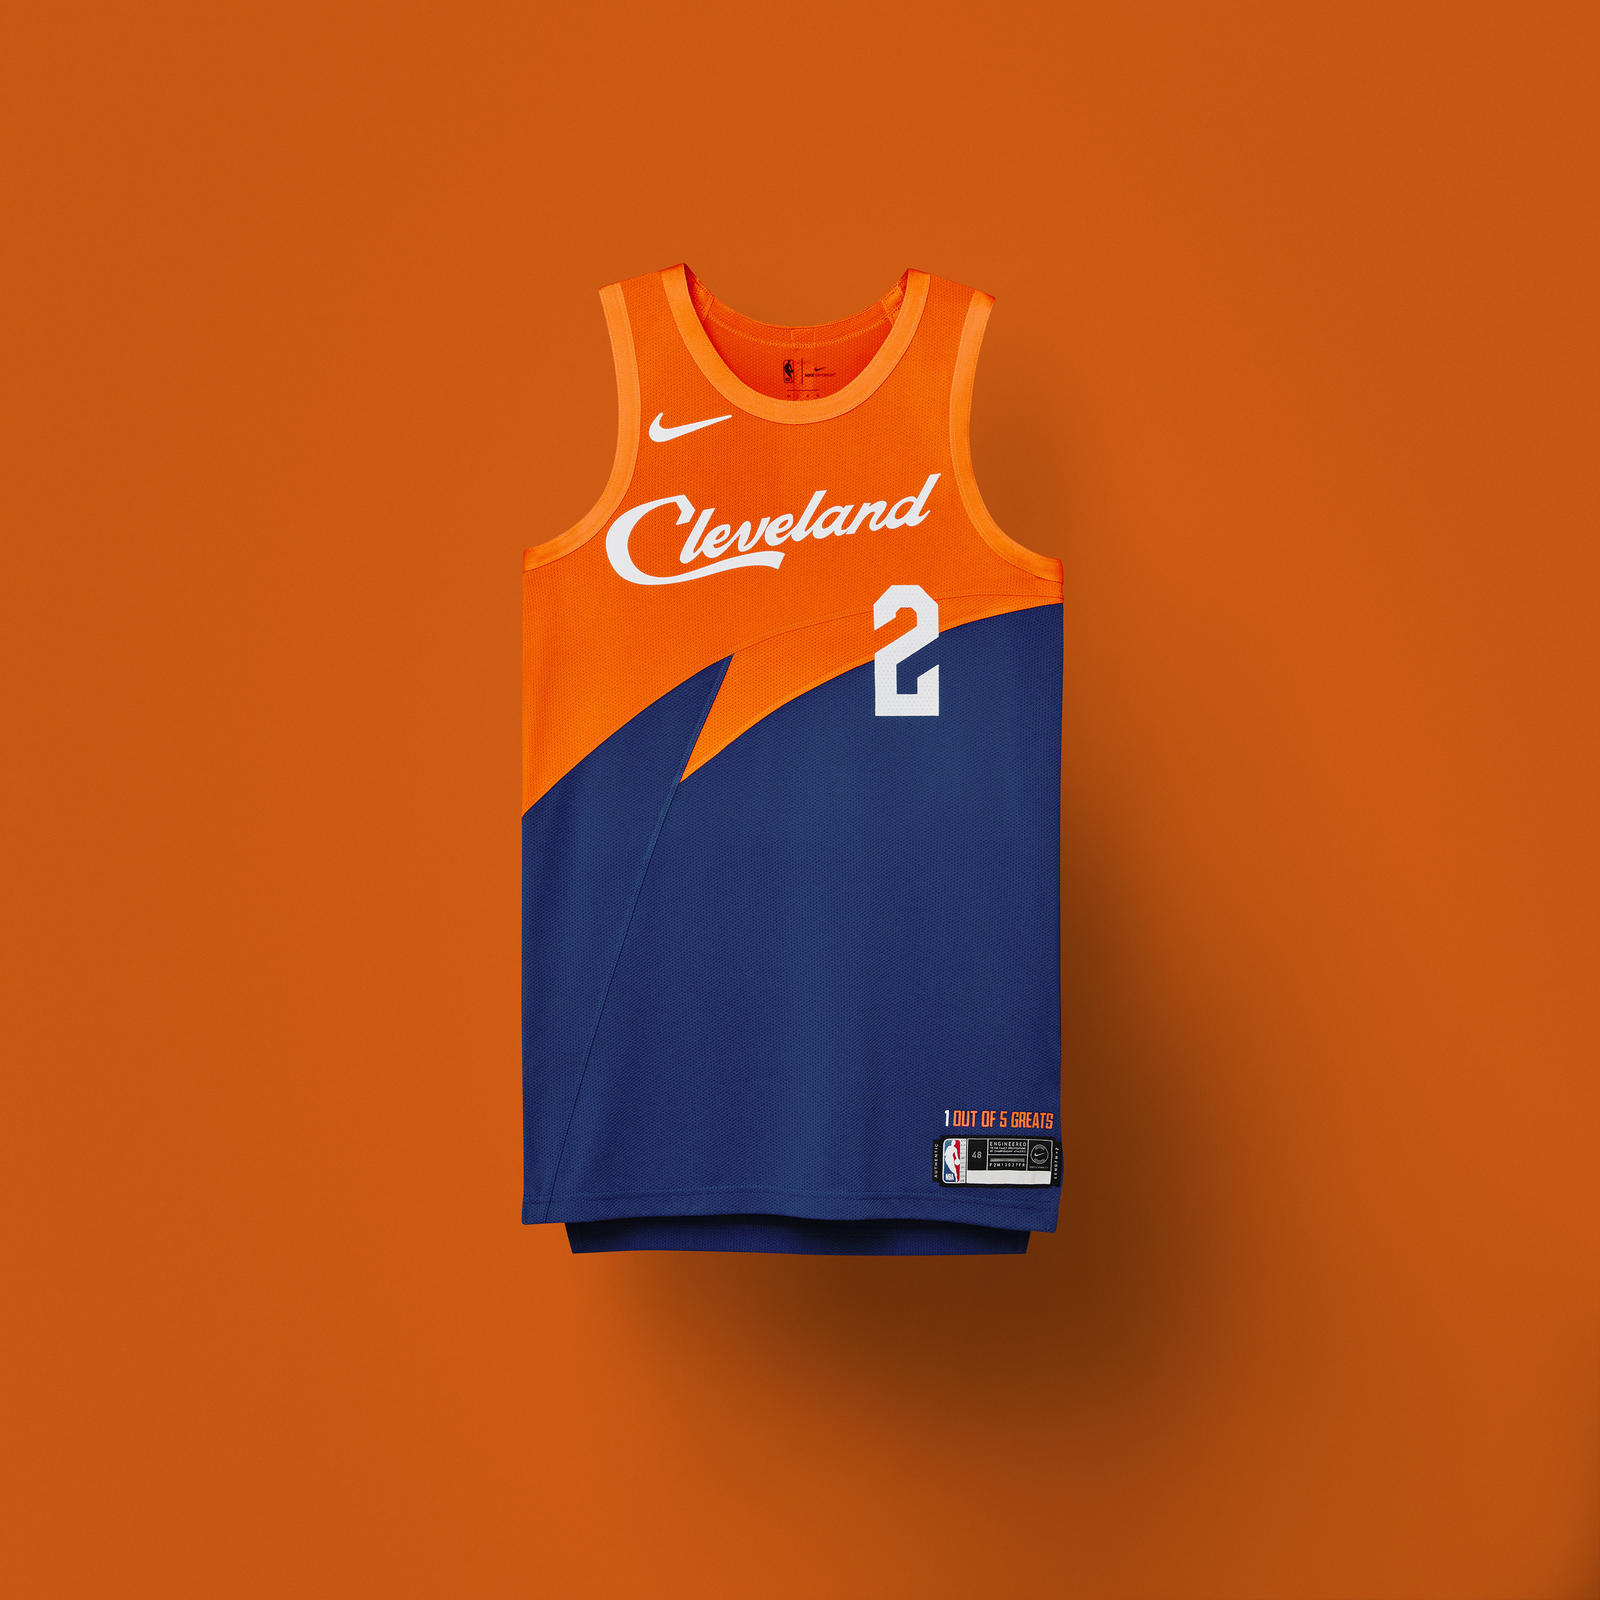 0c25ac2826b Ranking every 'City Edition' jersey